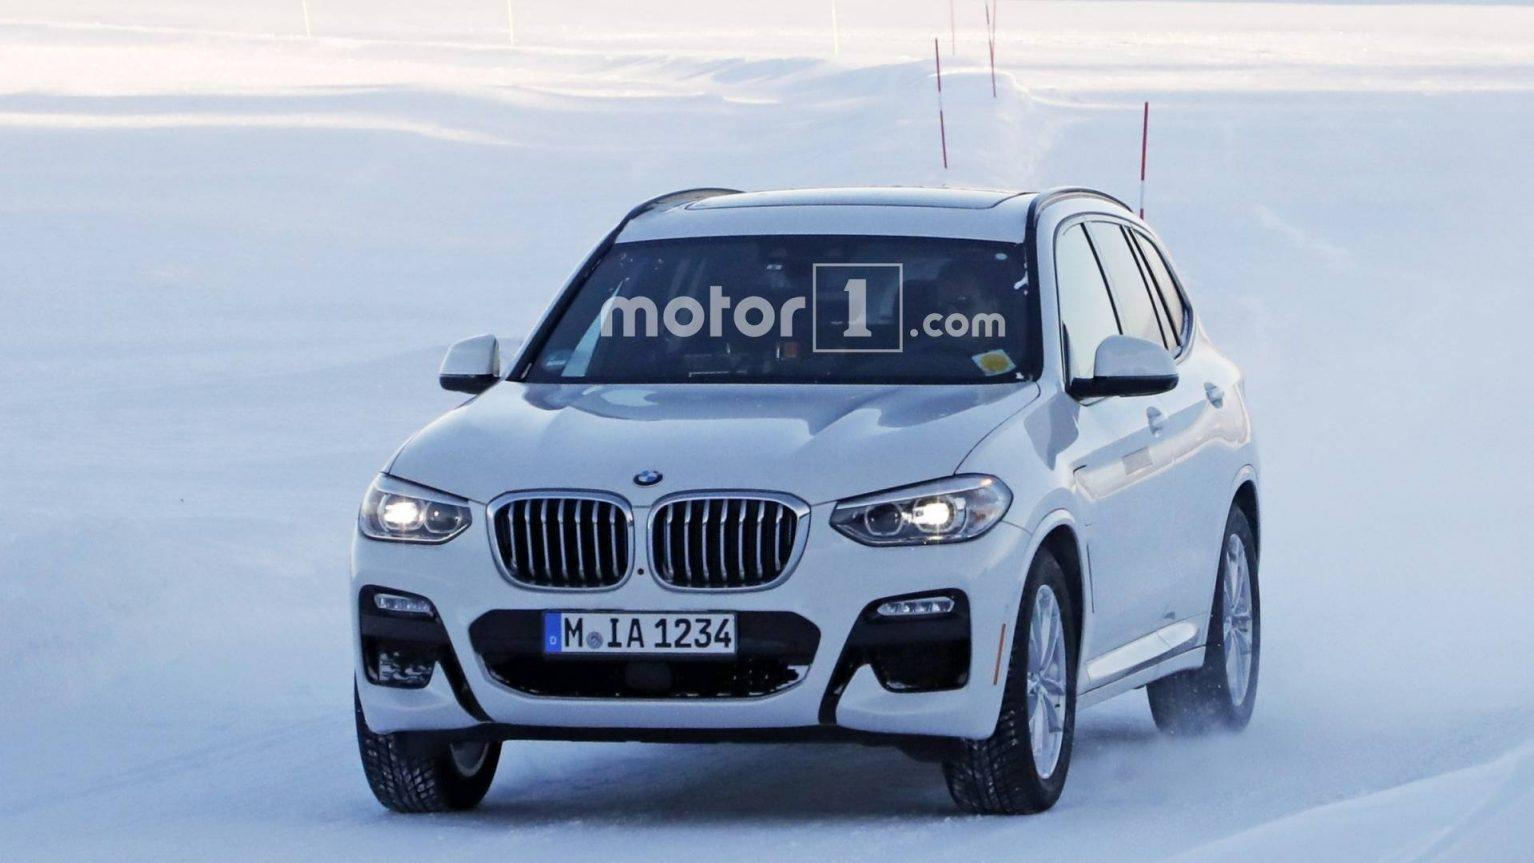 2019 BMW X3 New Design High Resolution Wallpapers | Autoweik.com